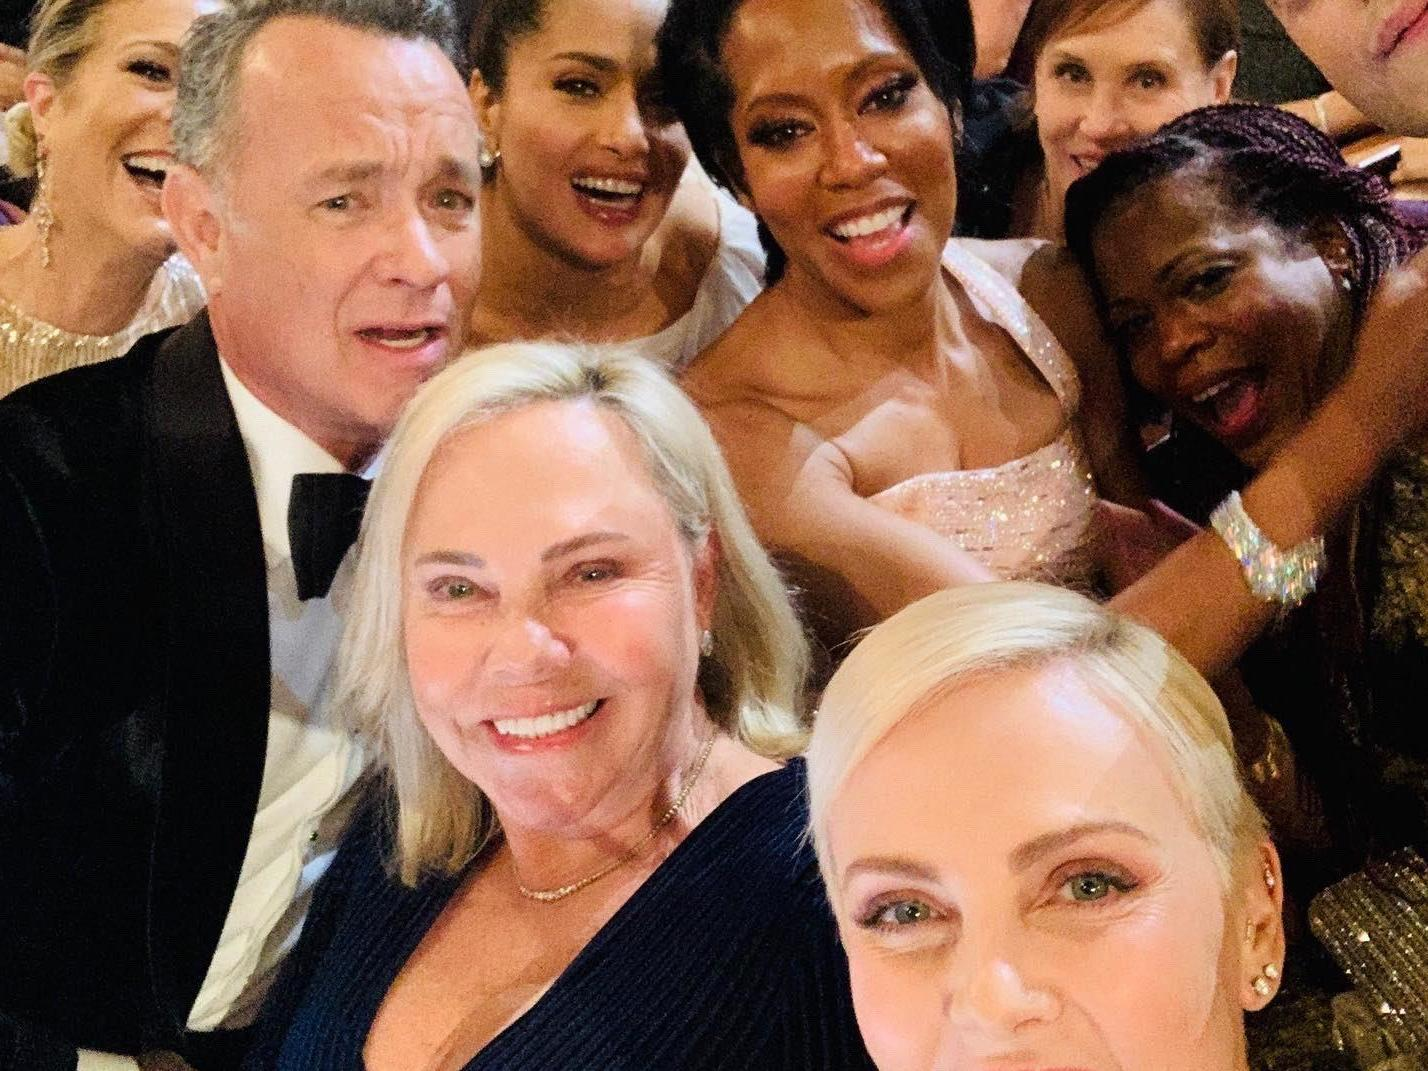 Charlize Theron rivals Ellen DeGeneres' epic Oscar's selfie with star-studded photo